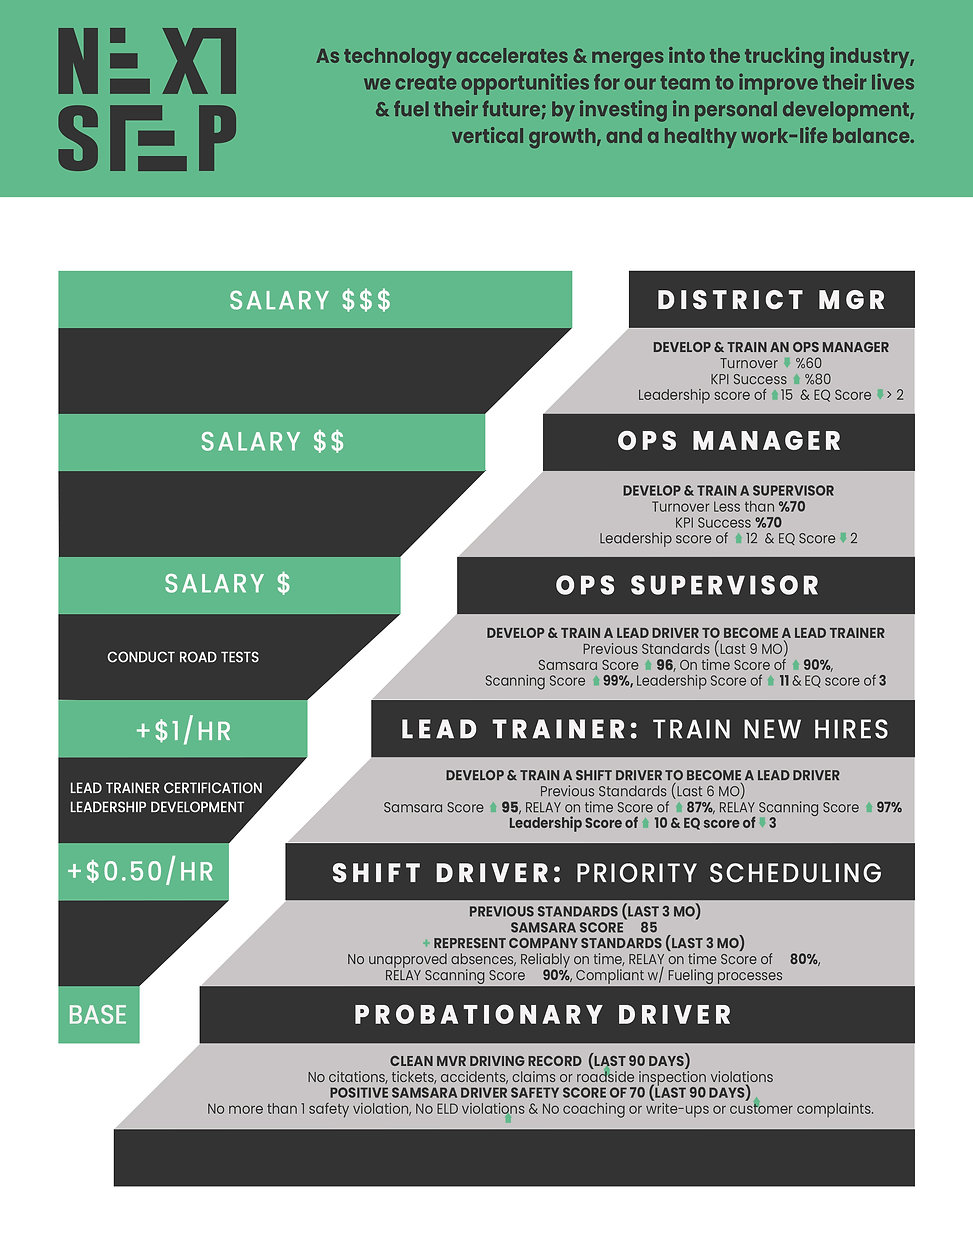 driver advancement infographic-Recovered